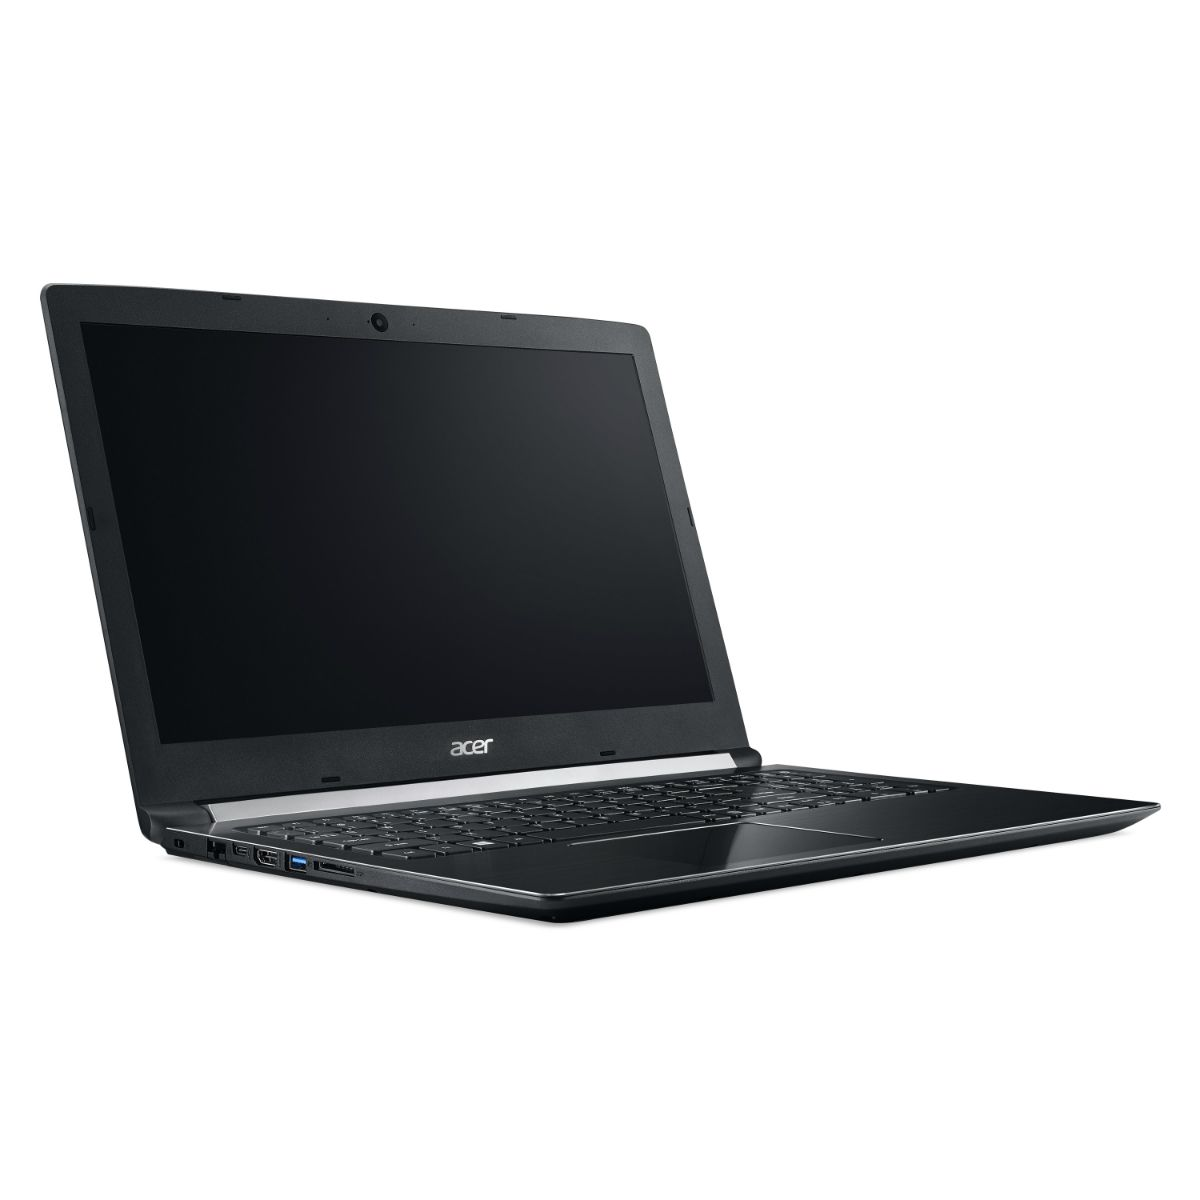 Notebook Acer A315-51-34uj Core I3 Free